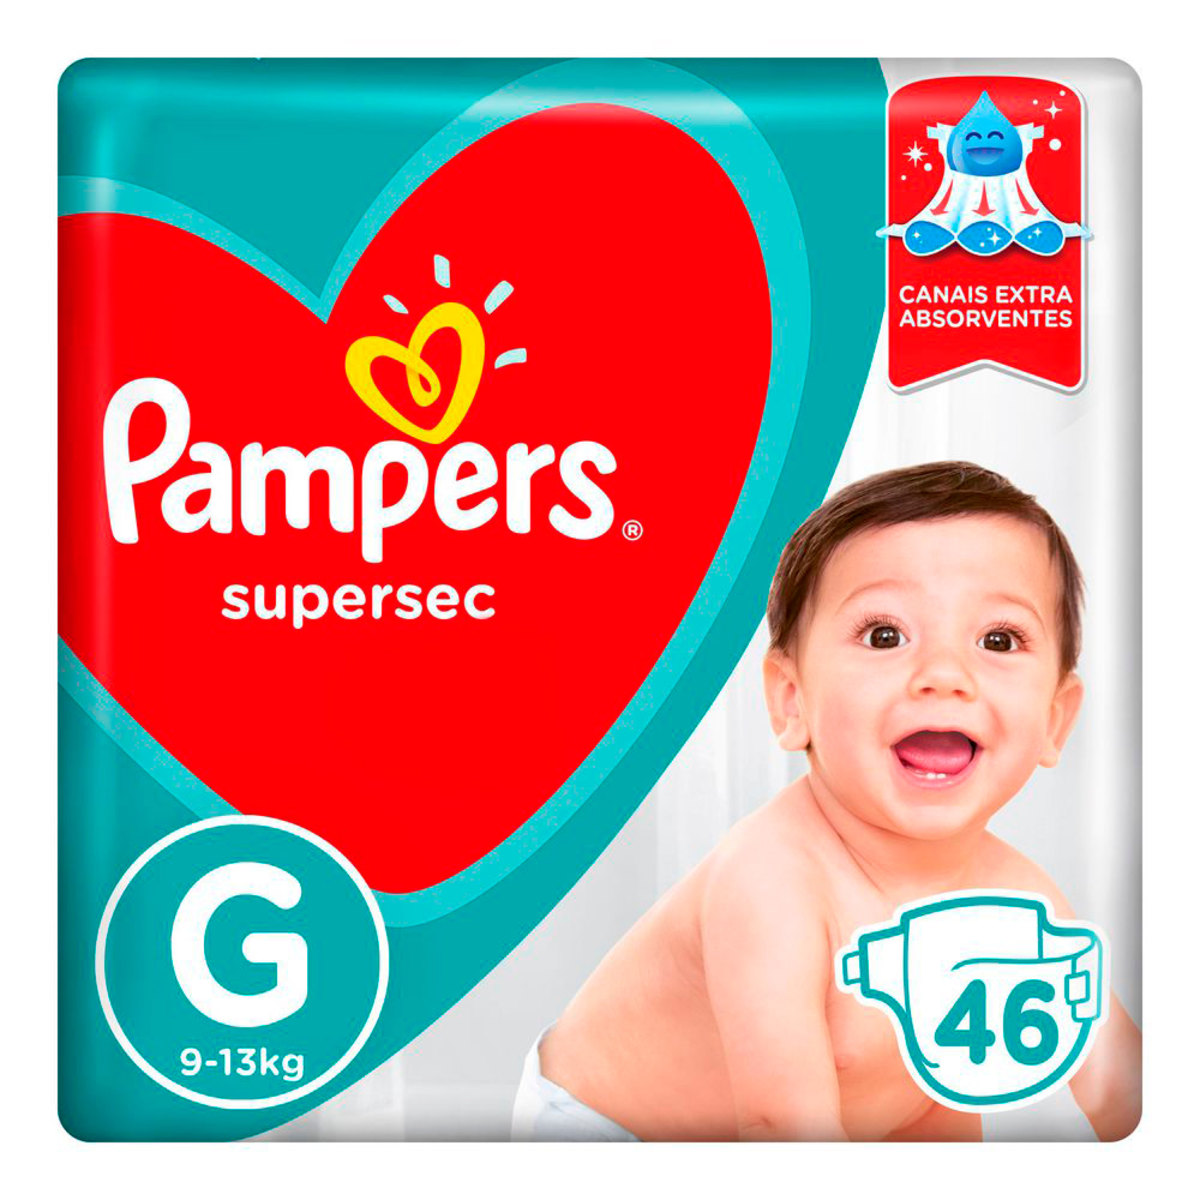 Fraldas Pampers Supersec G - 46 Unidades